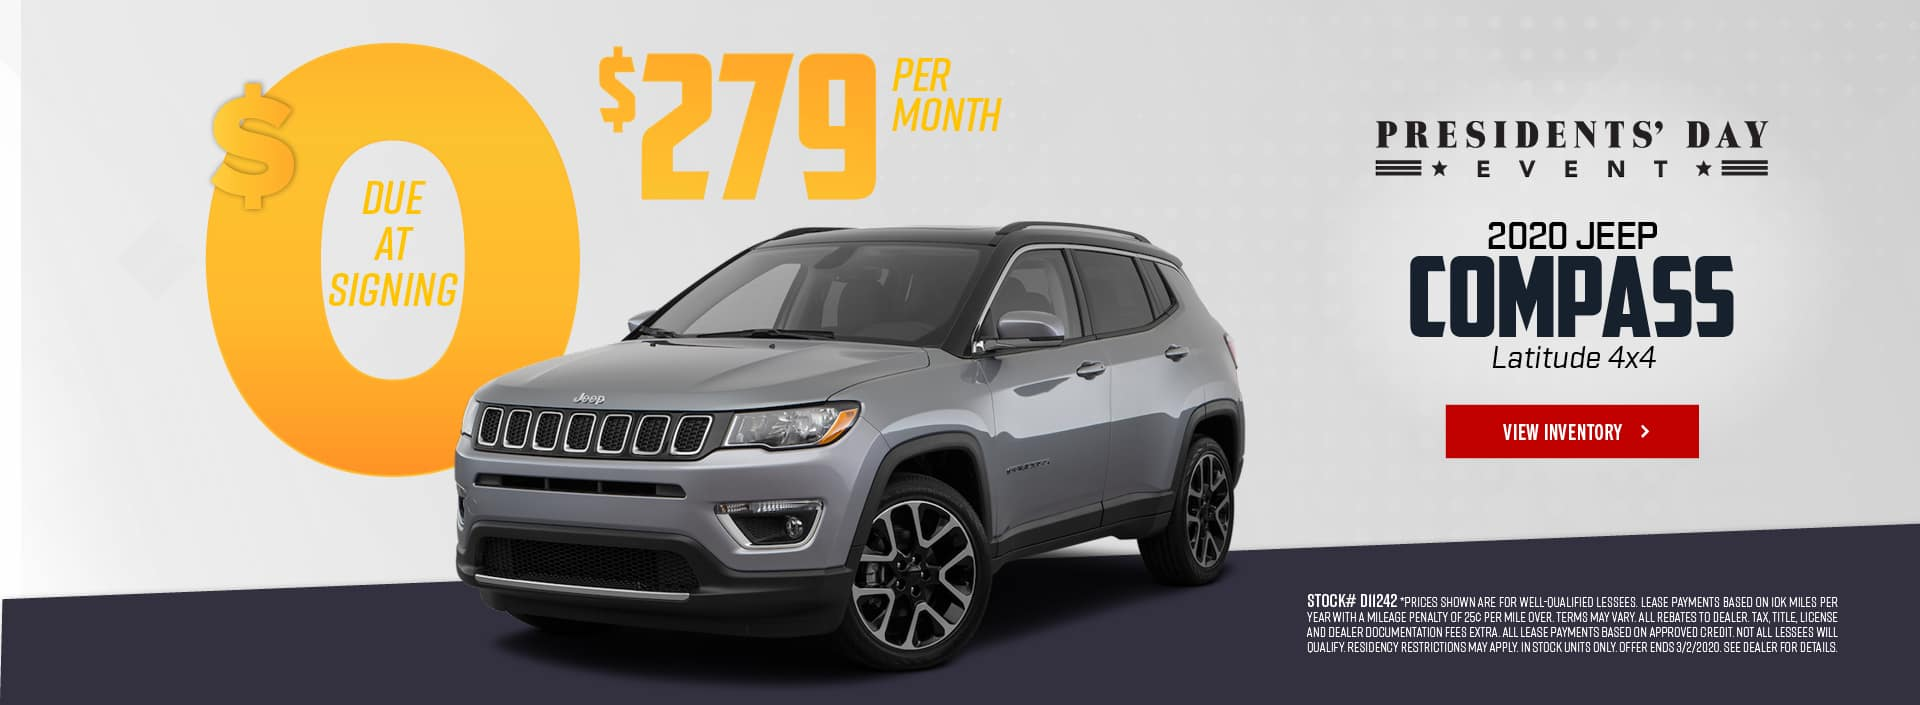 2020 Jeep Compass Special in Madison, OH